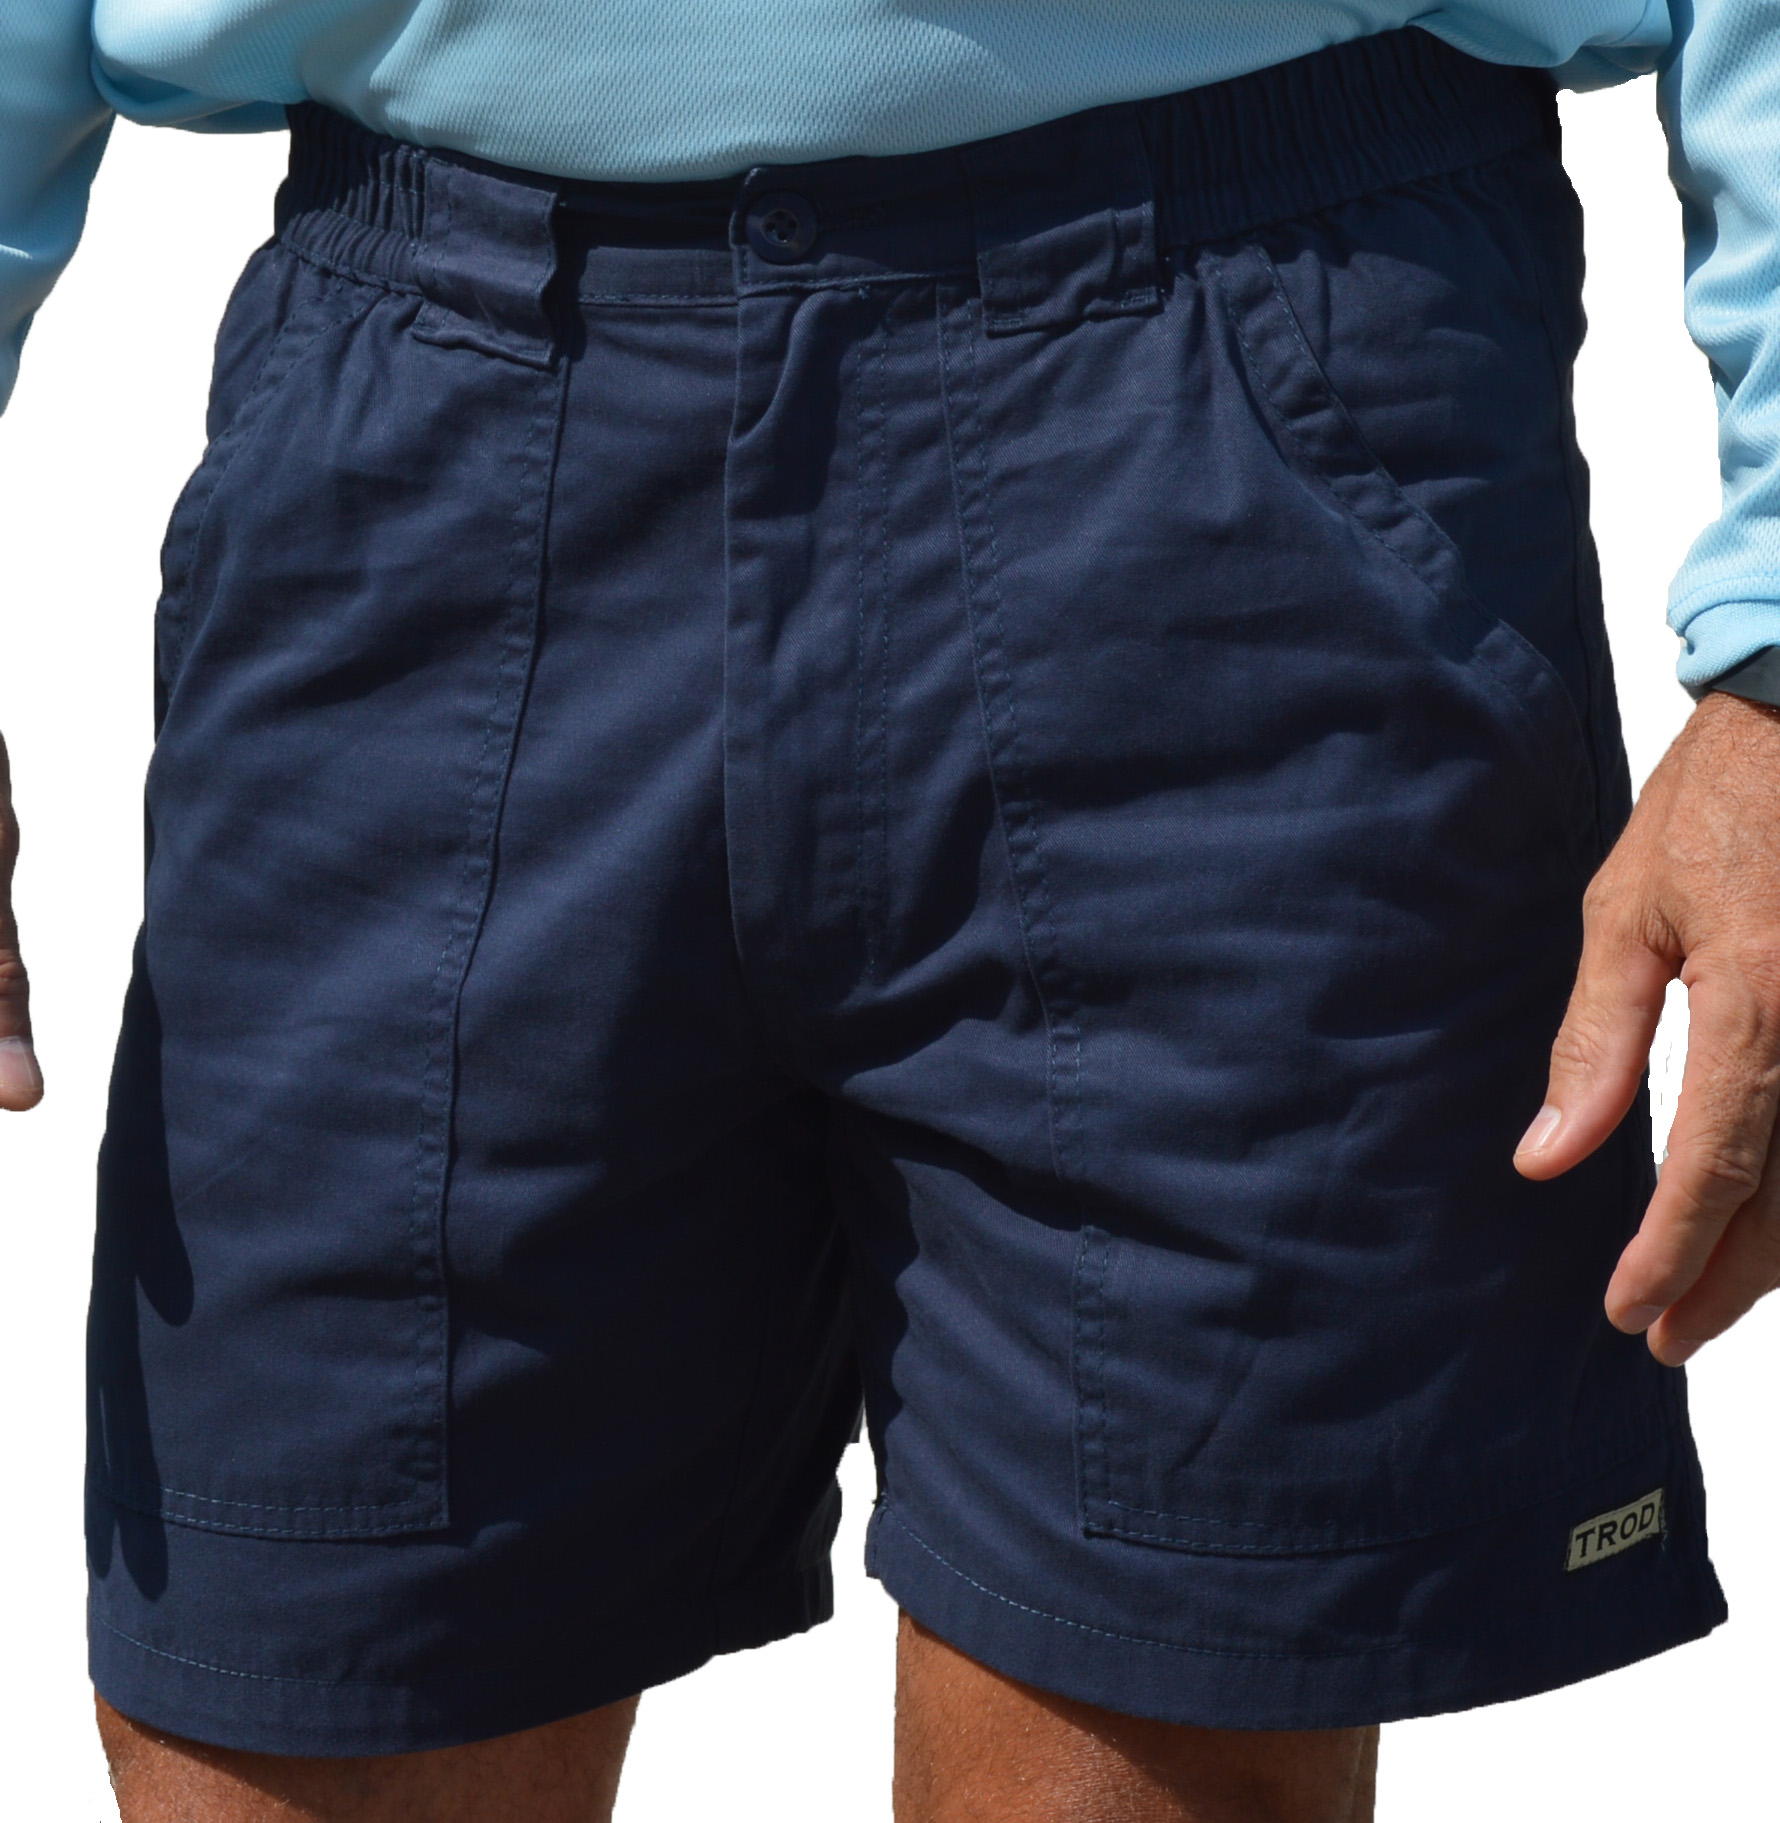 TROD Men's Deep Pocket Short with 6 inch Inseam - Private ...